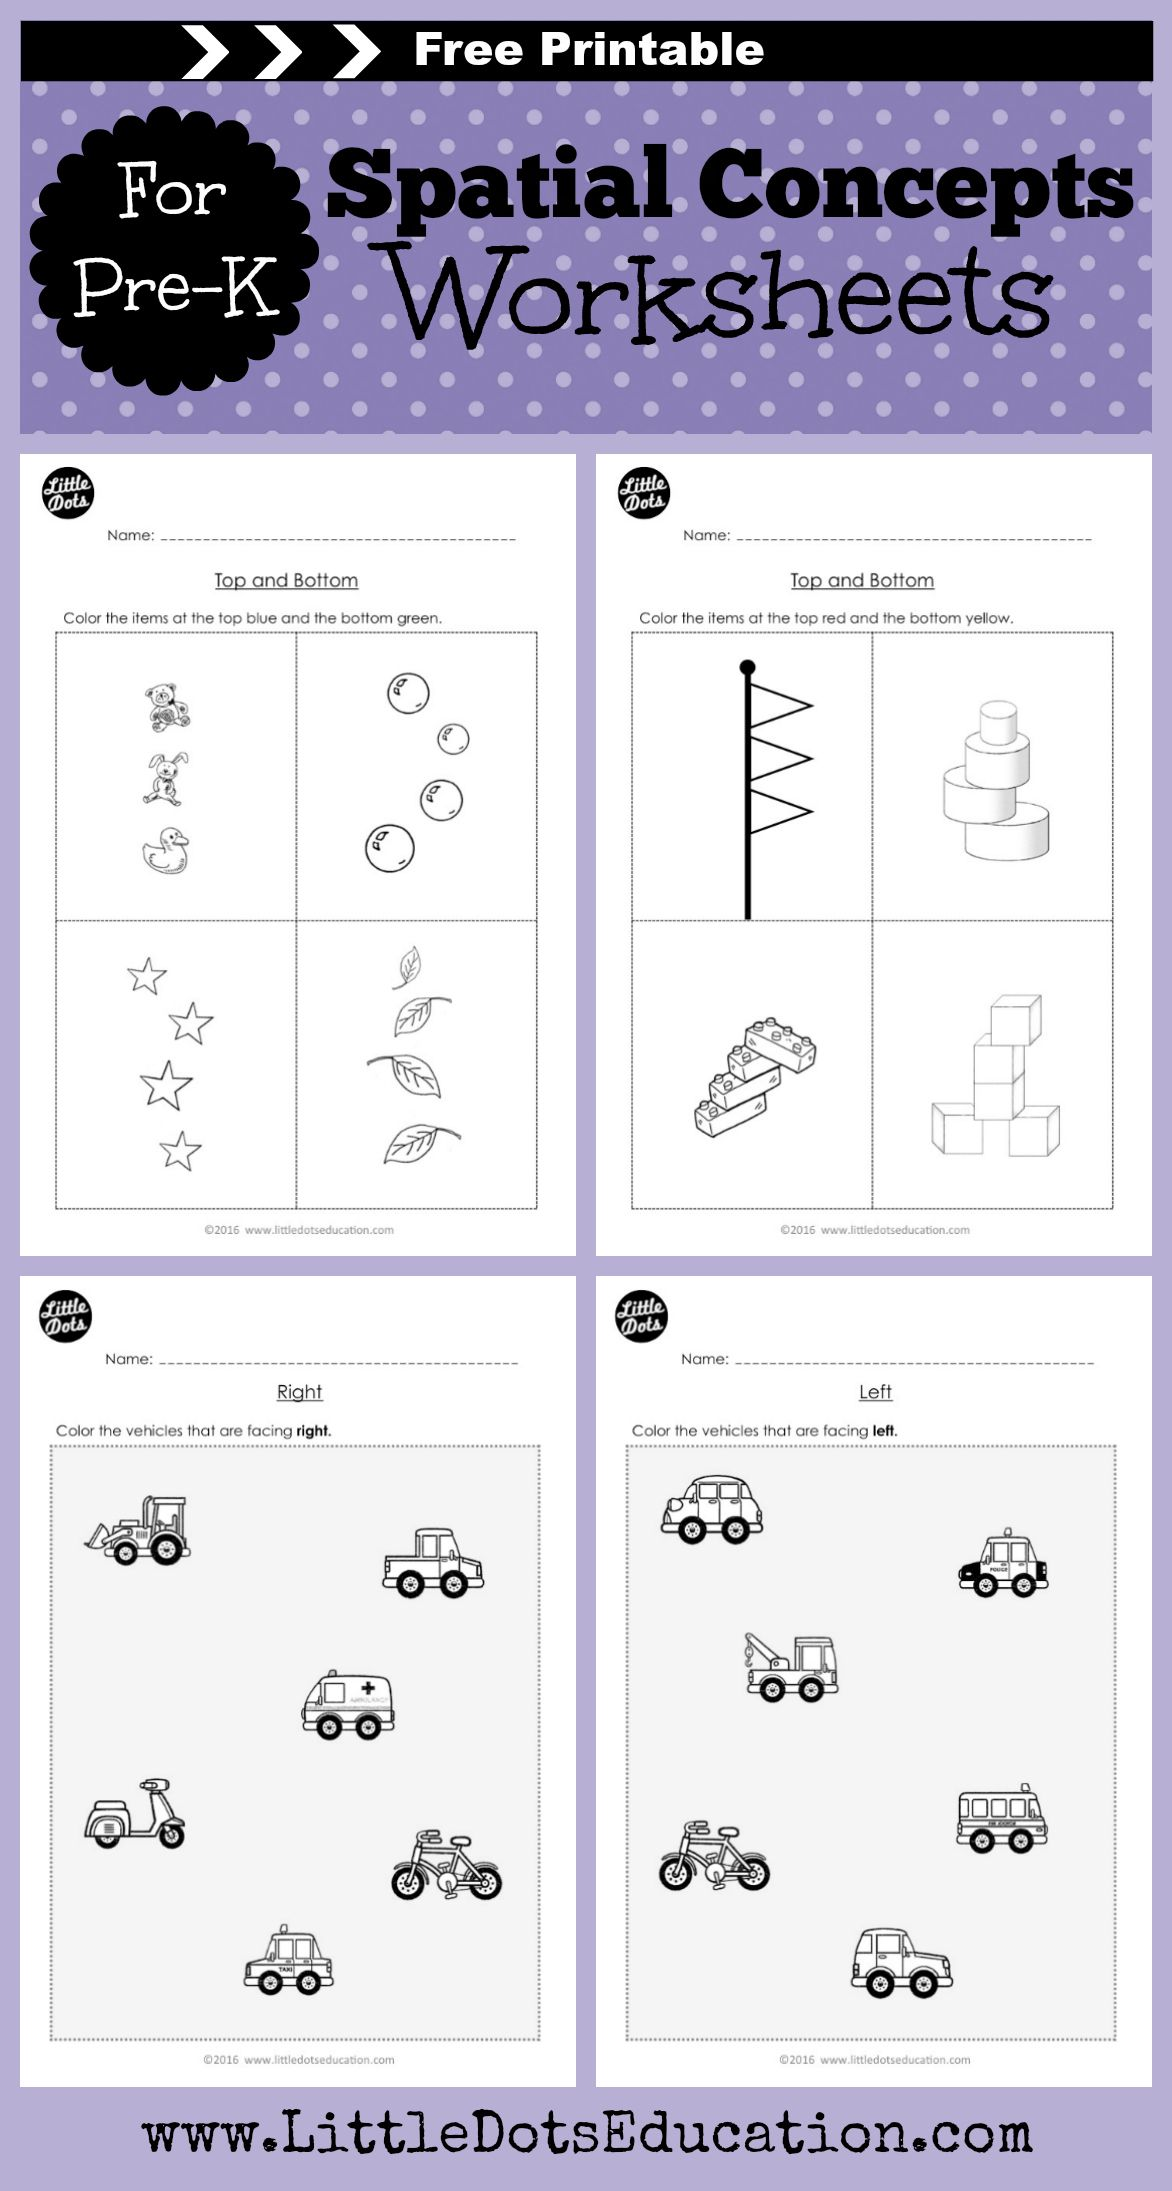 Free Pre K Basic Spatial Concepts Worksheets